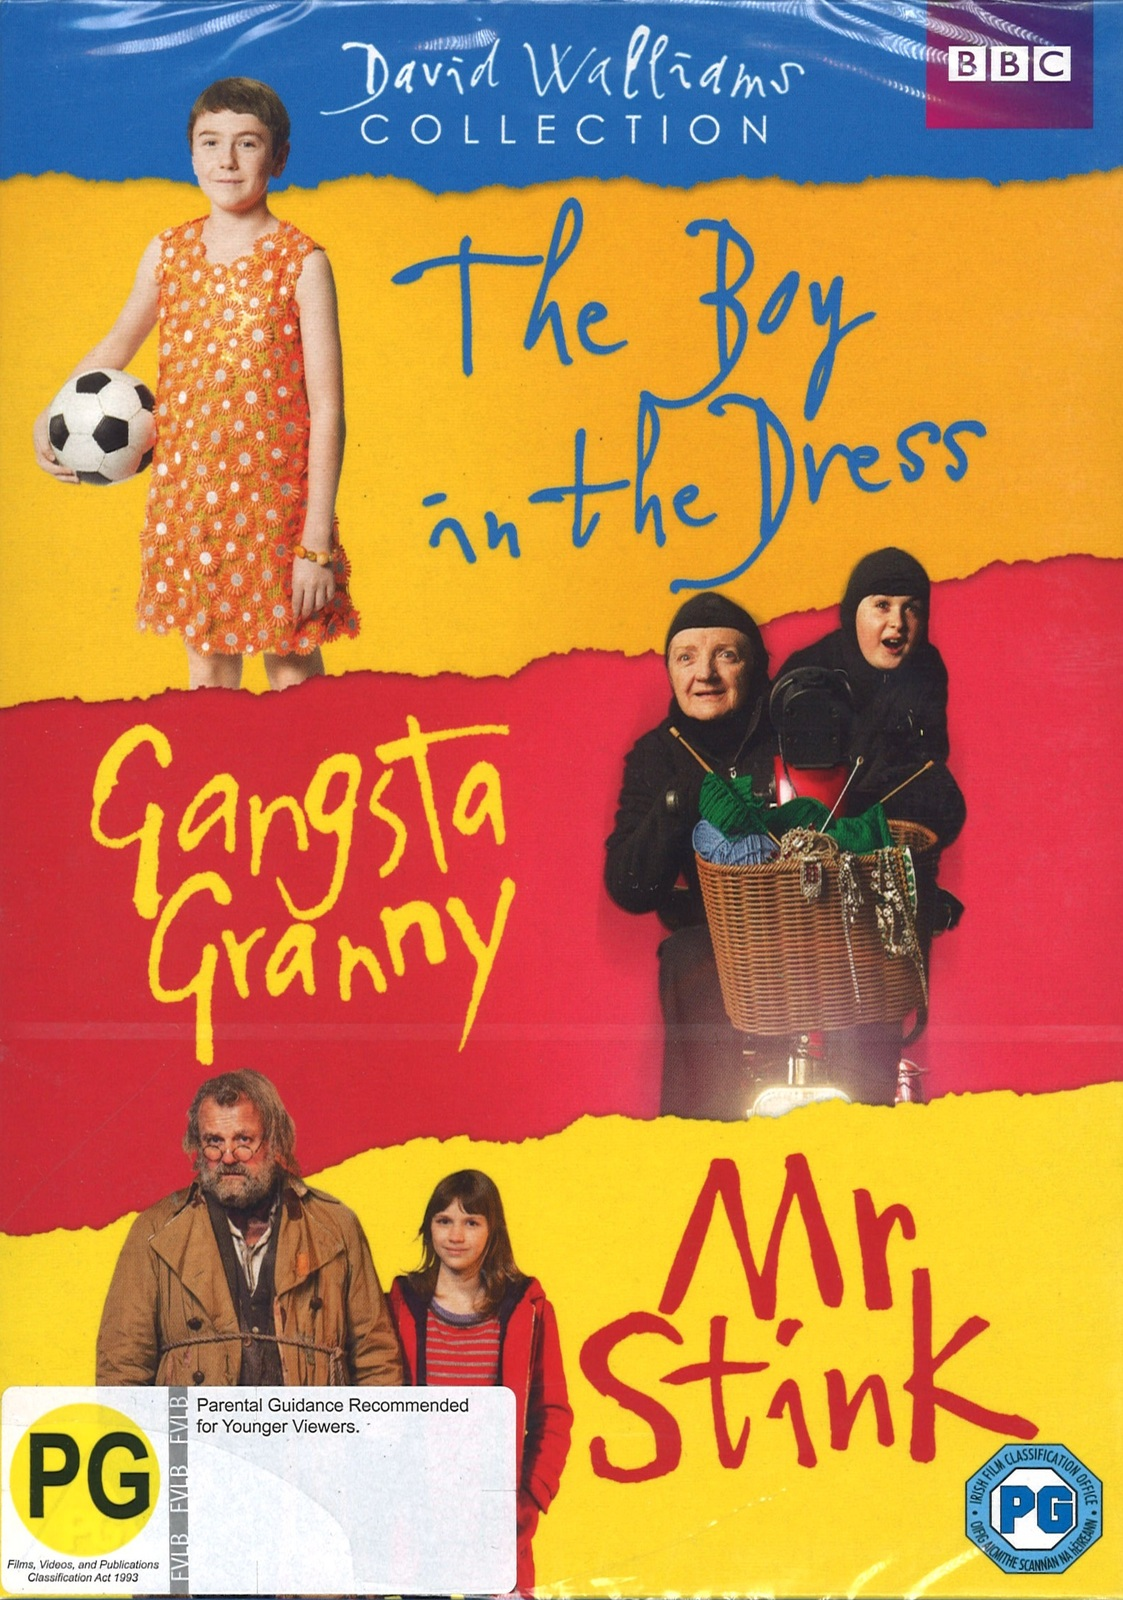 David Walliams Collection The Boy In The Dress Gangsta Granny Mr Stink on DVD image